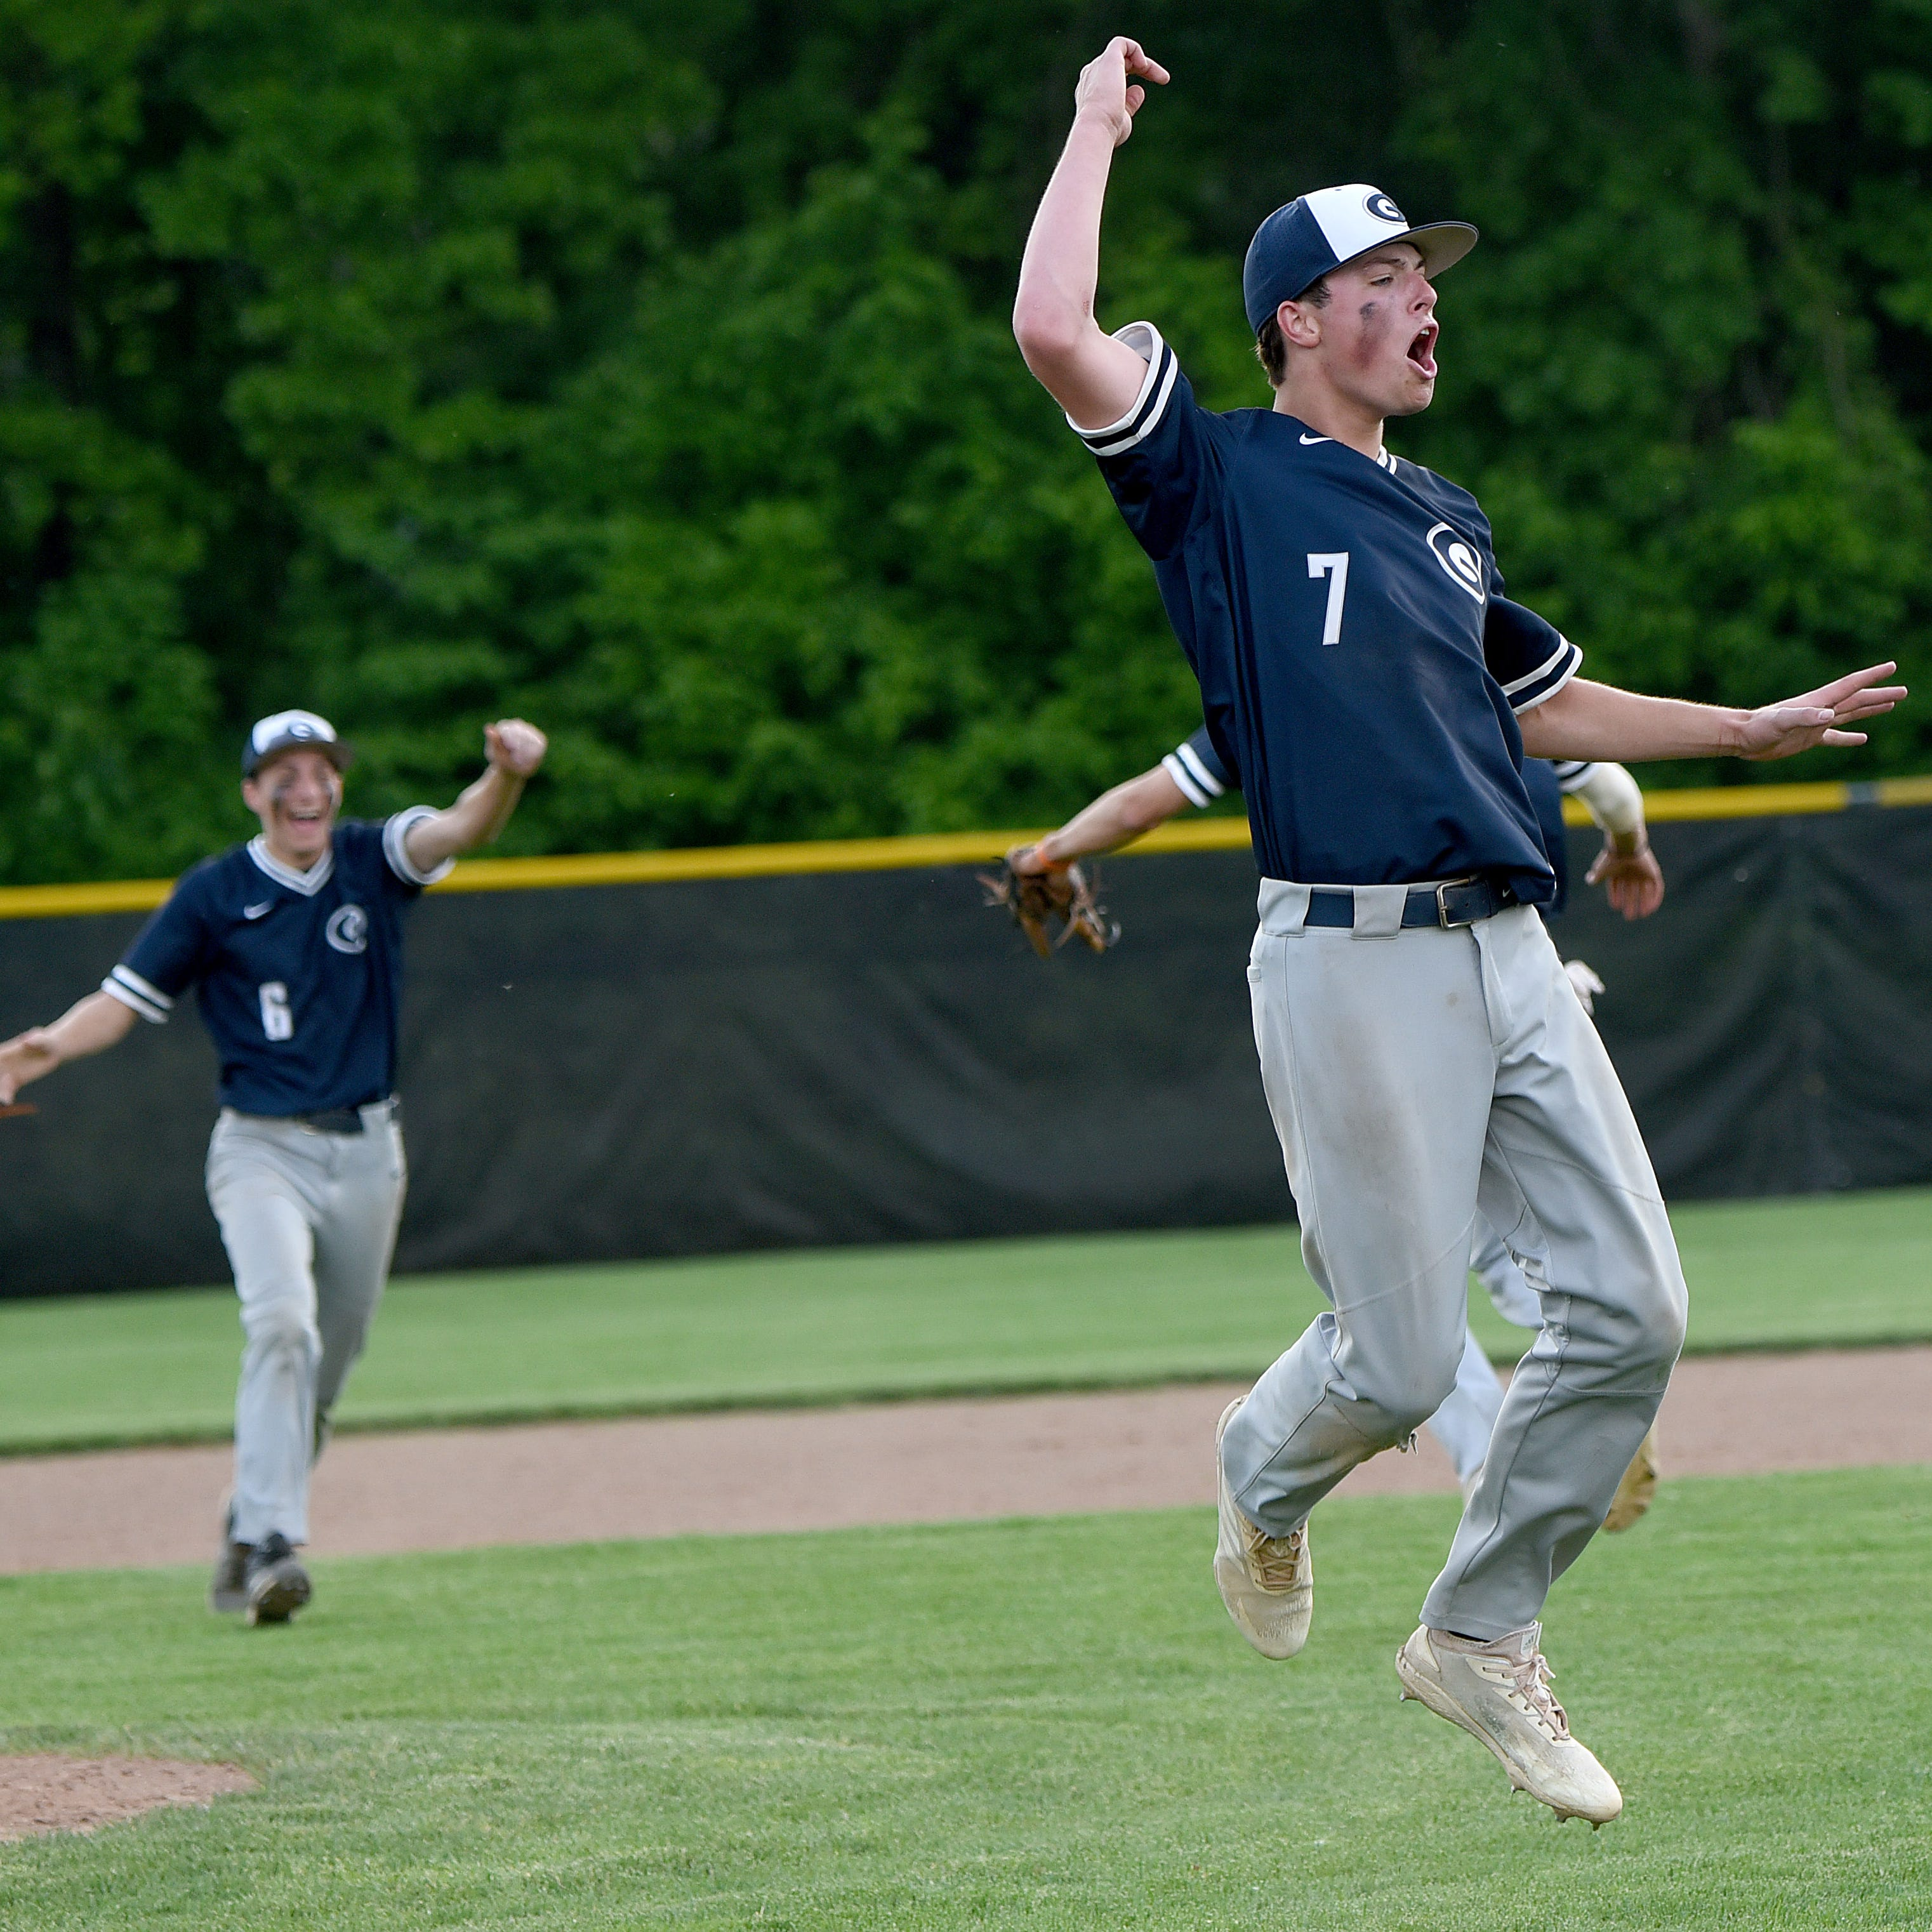 Granville baseball shocks Watterson with epic comeback for district championship